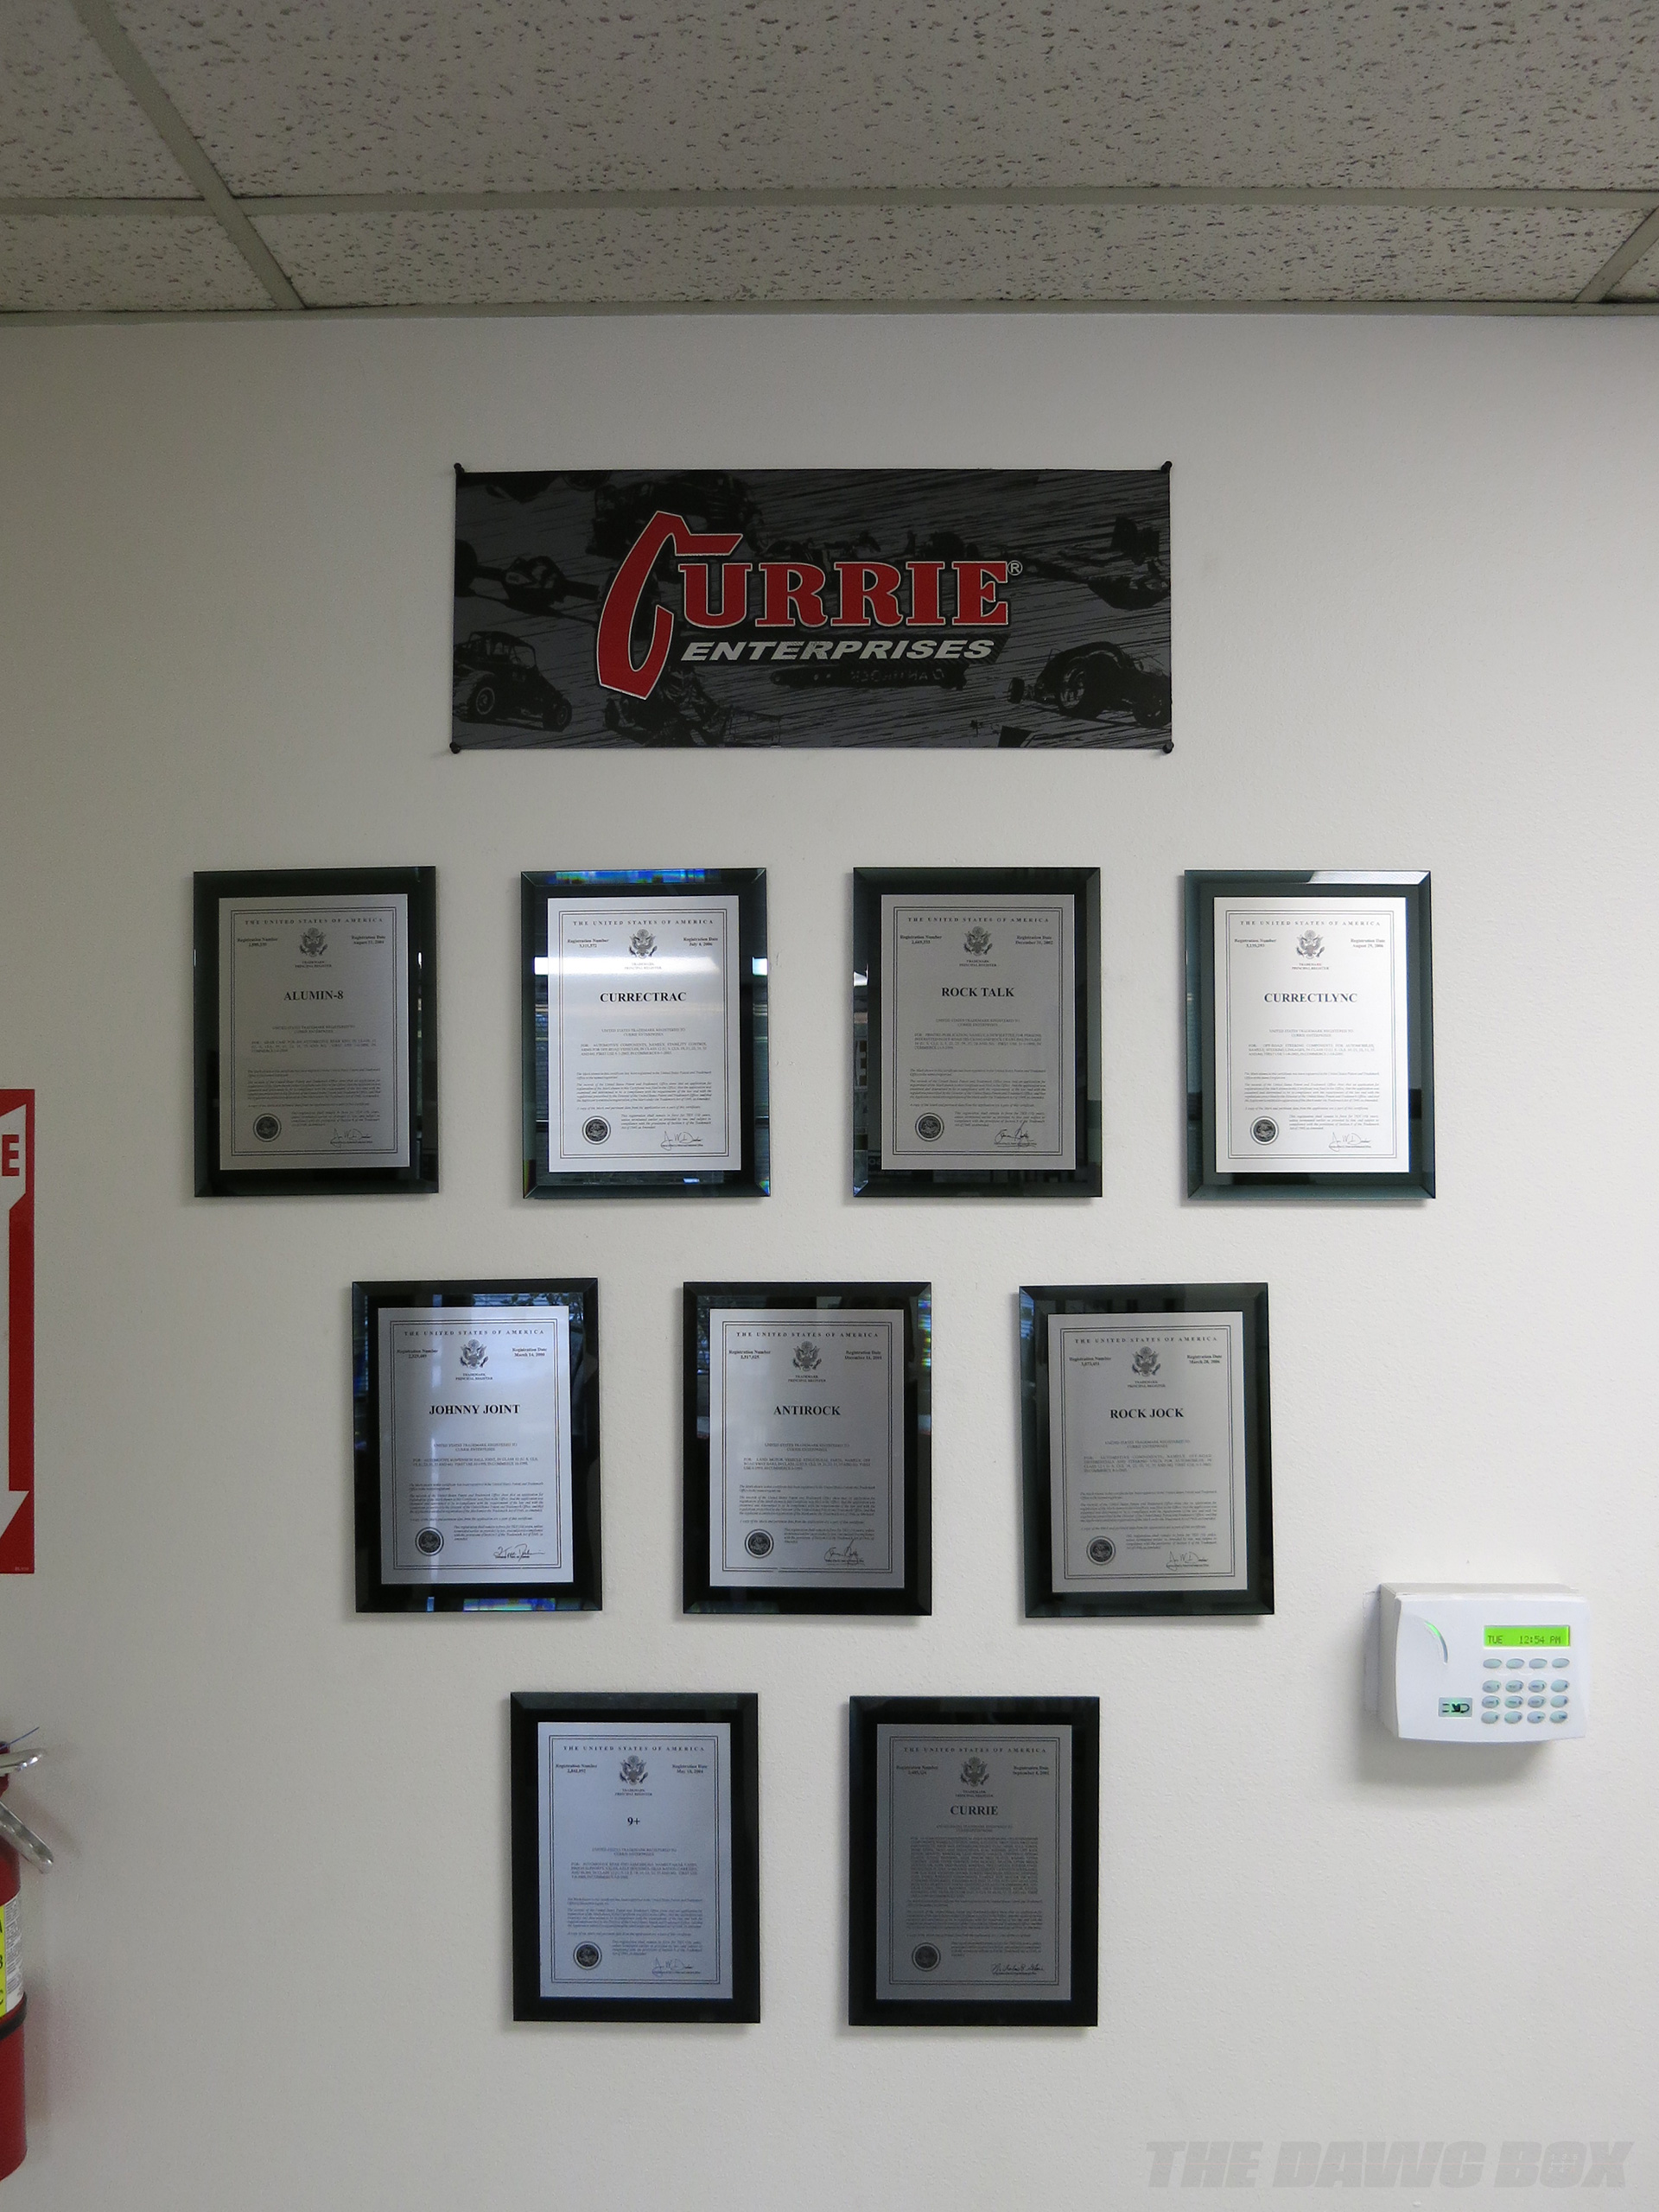 Currie Enterprises, Trademarked Names